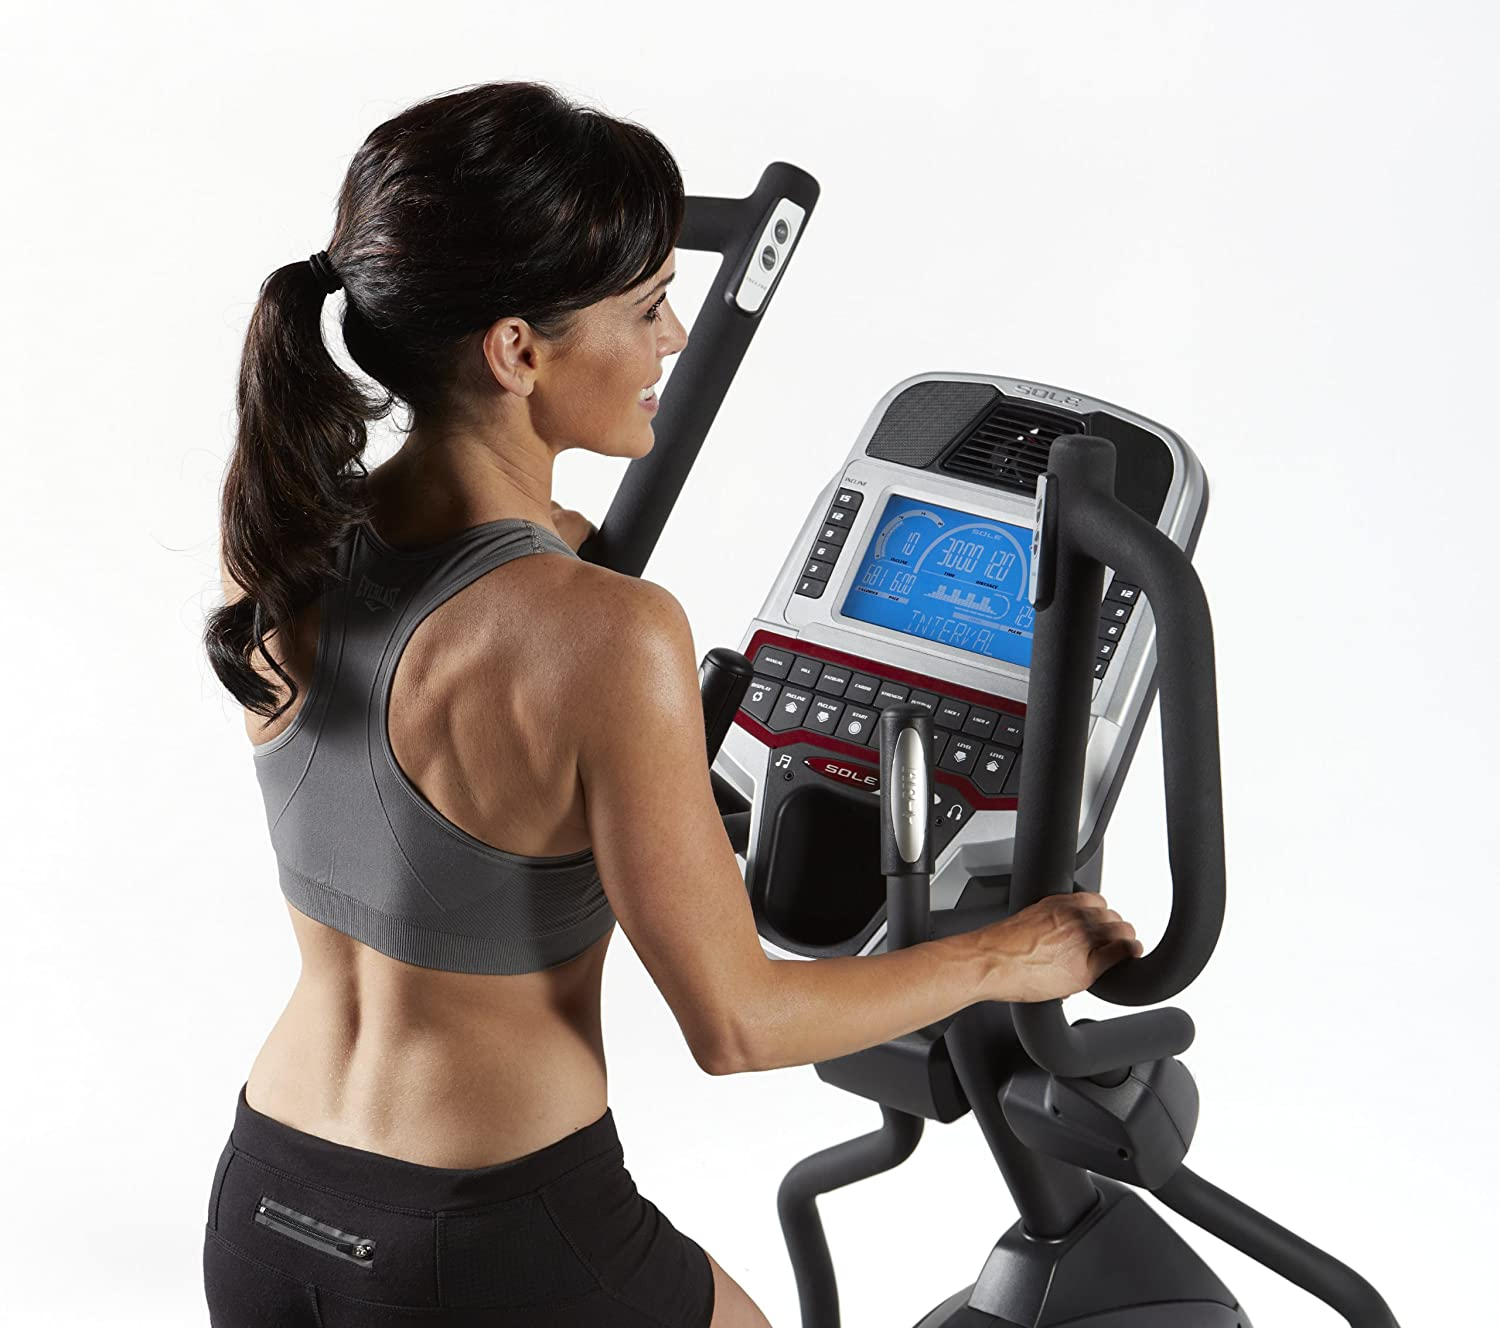 Amazon.com : Sole Fitness E95 Elliptical Machine : Elliptical Trainers : Sports & Outdoors